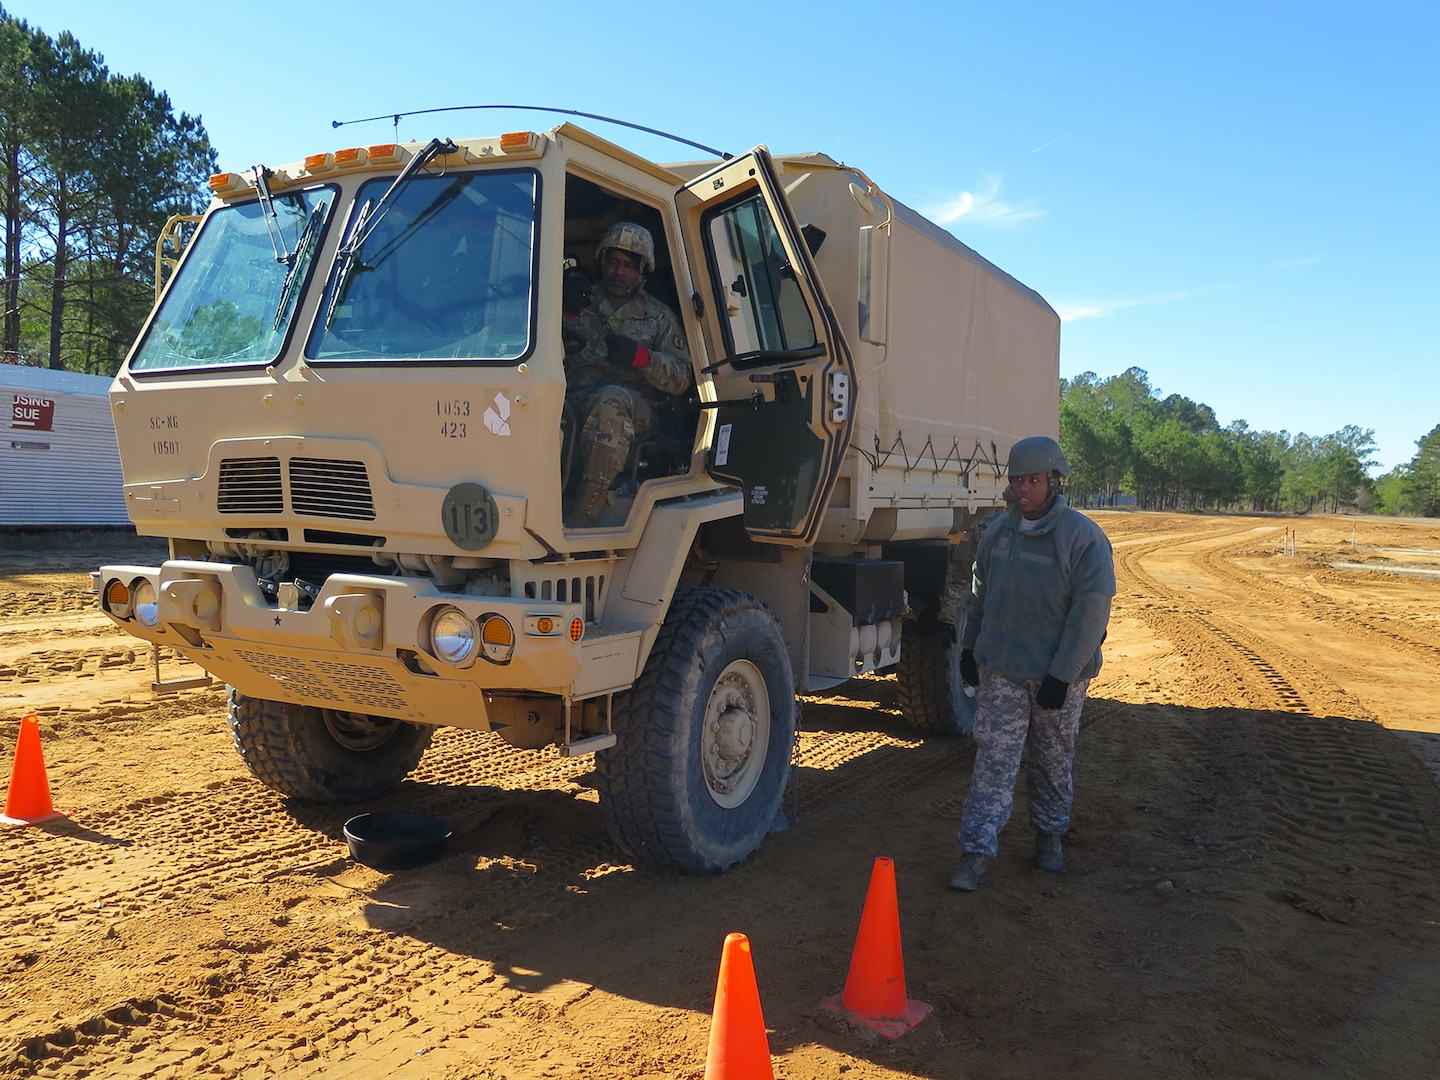 Students learning vehicle skills in SC